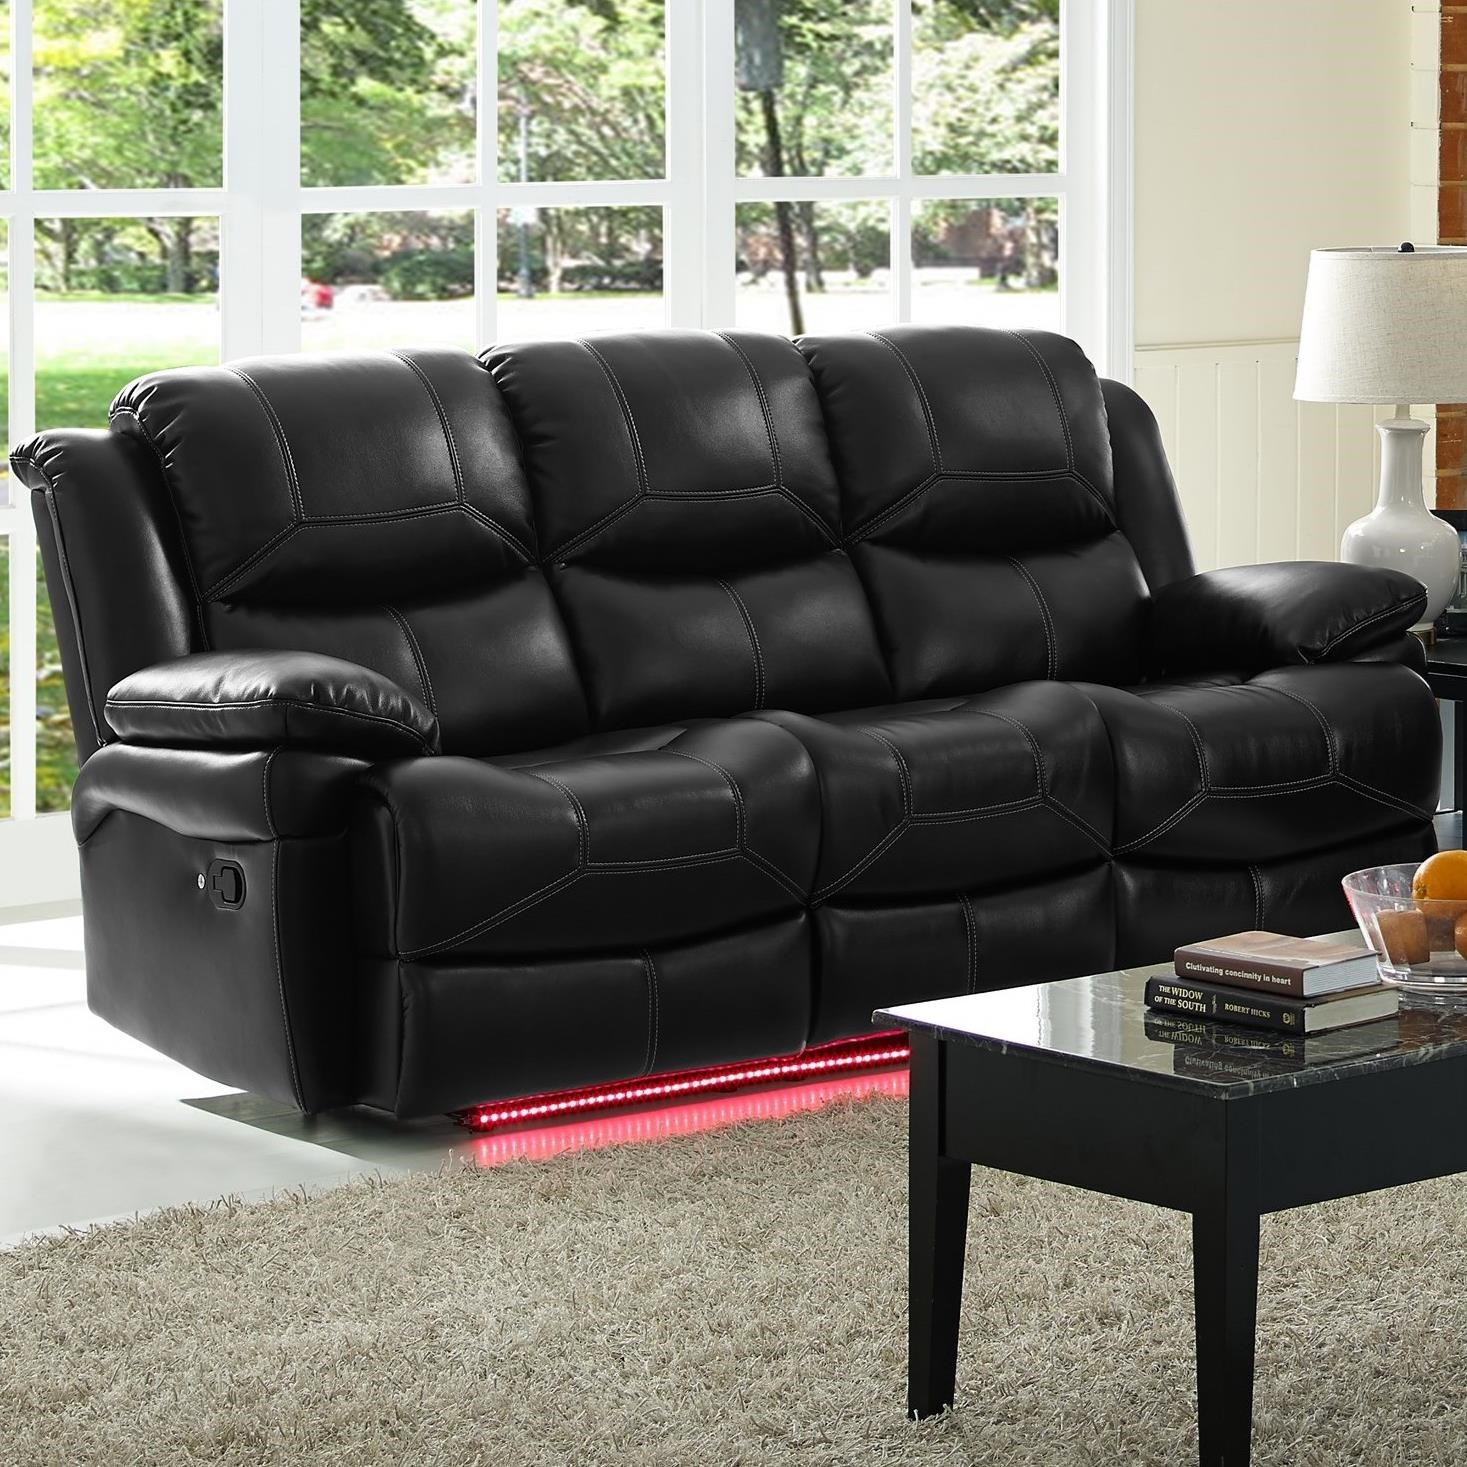 living room reclining sofas apartment decorating ideas new classic flynn 22 2177 30p contemporary power sofa with pillow arms dunk bright furniture